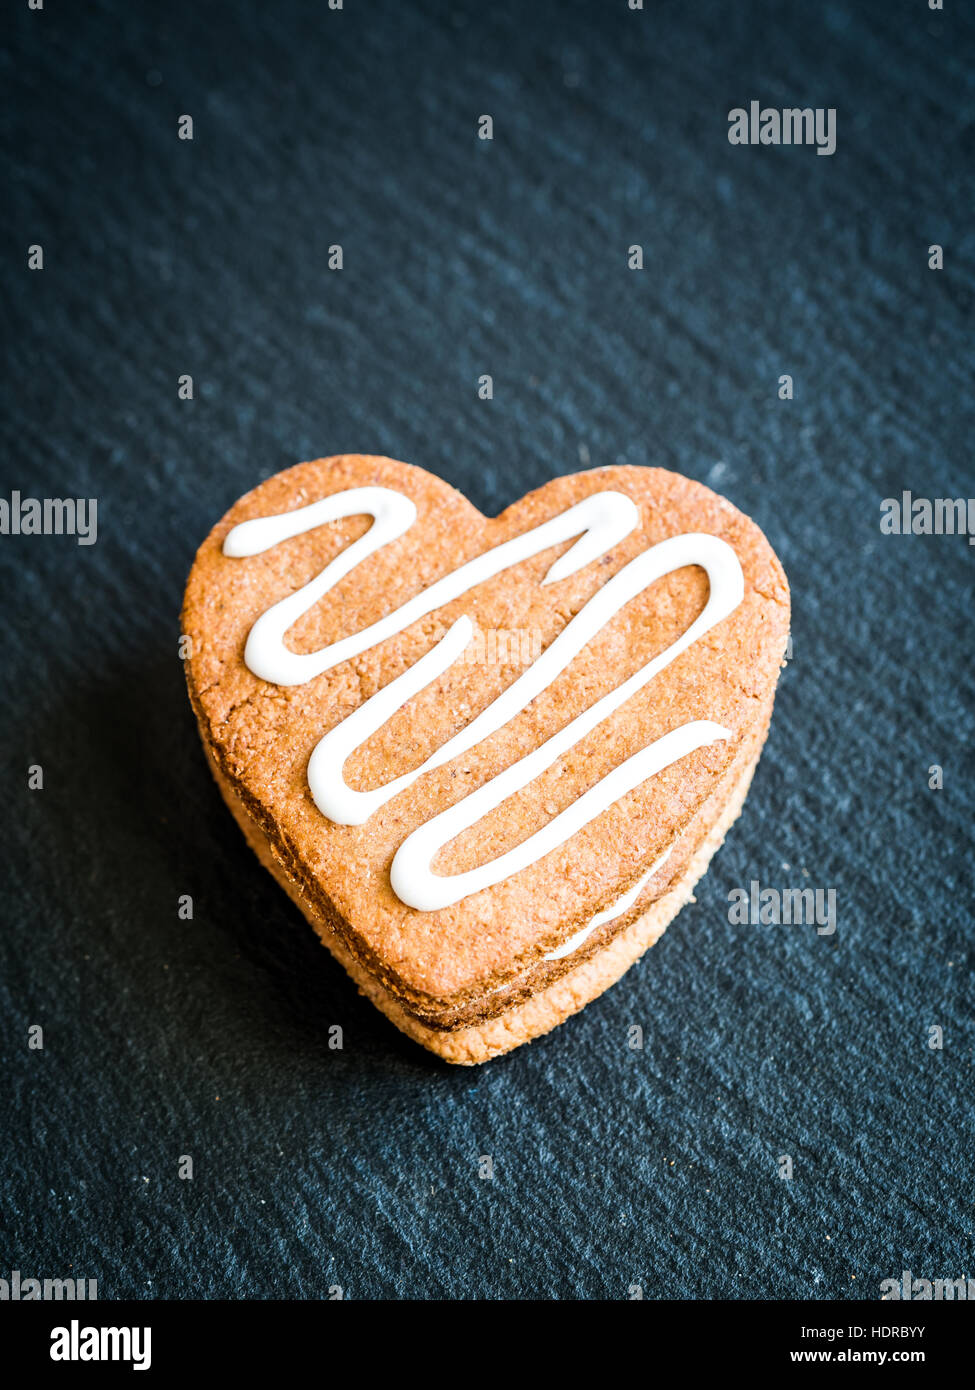 Heart-shaped Christmas gingerbread cookies arranged in a pile on a dark background. - Stock Image